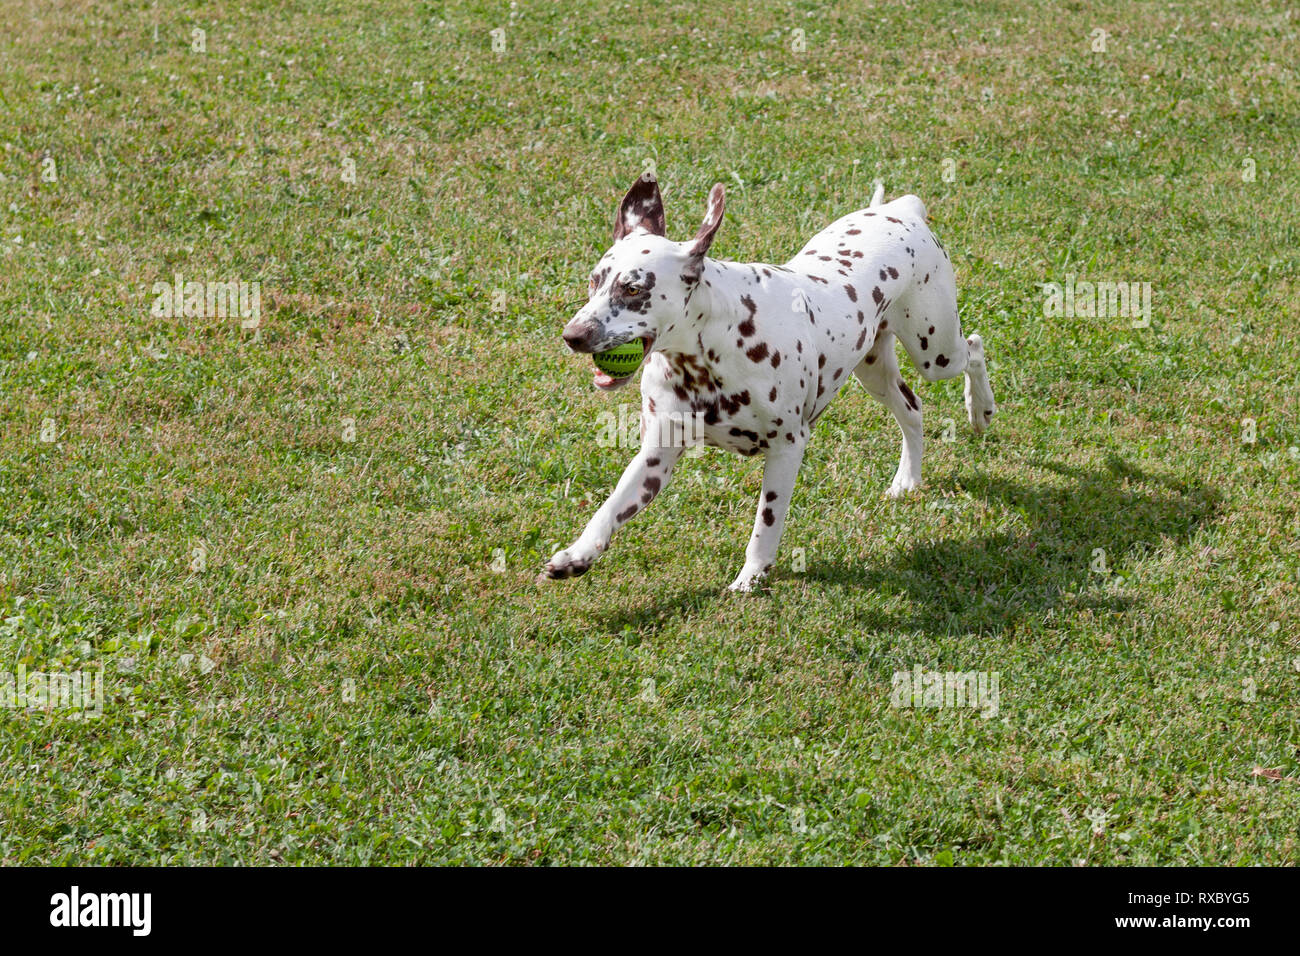 Cute dalmatian puppy is playing with small ball. Dog toys. Pet animals. Purebred dog. - Stock Image